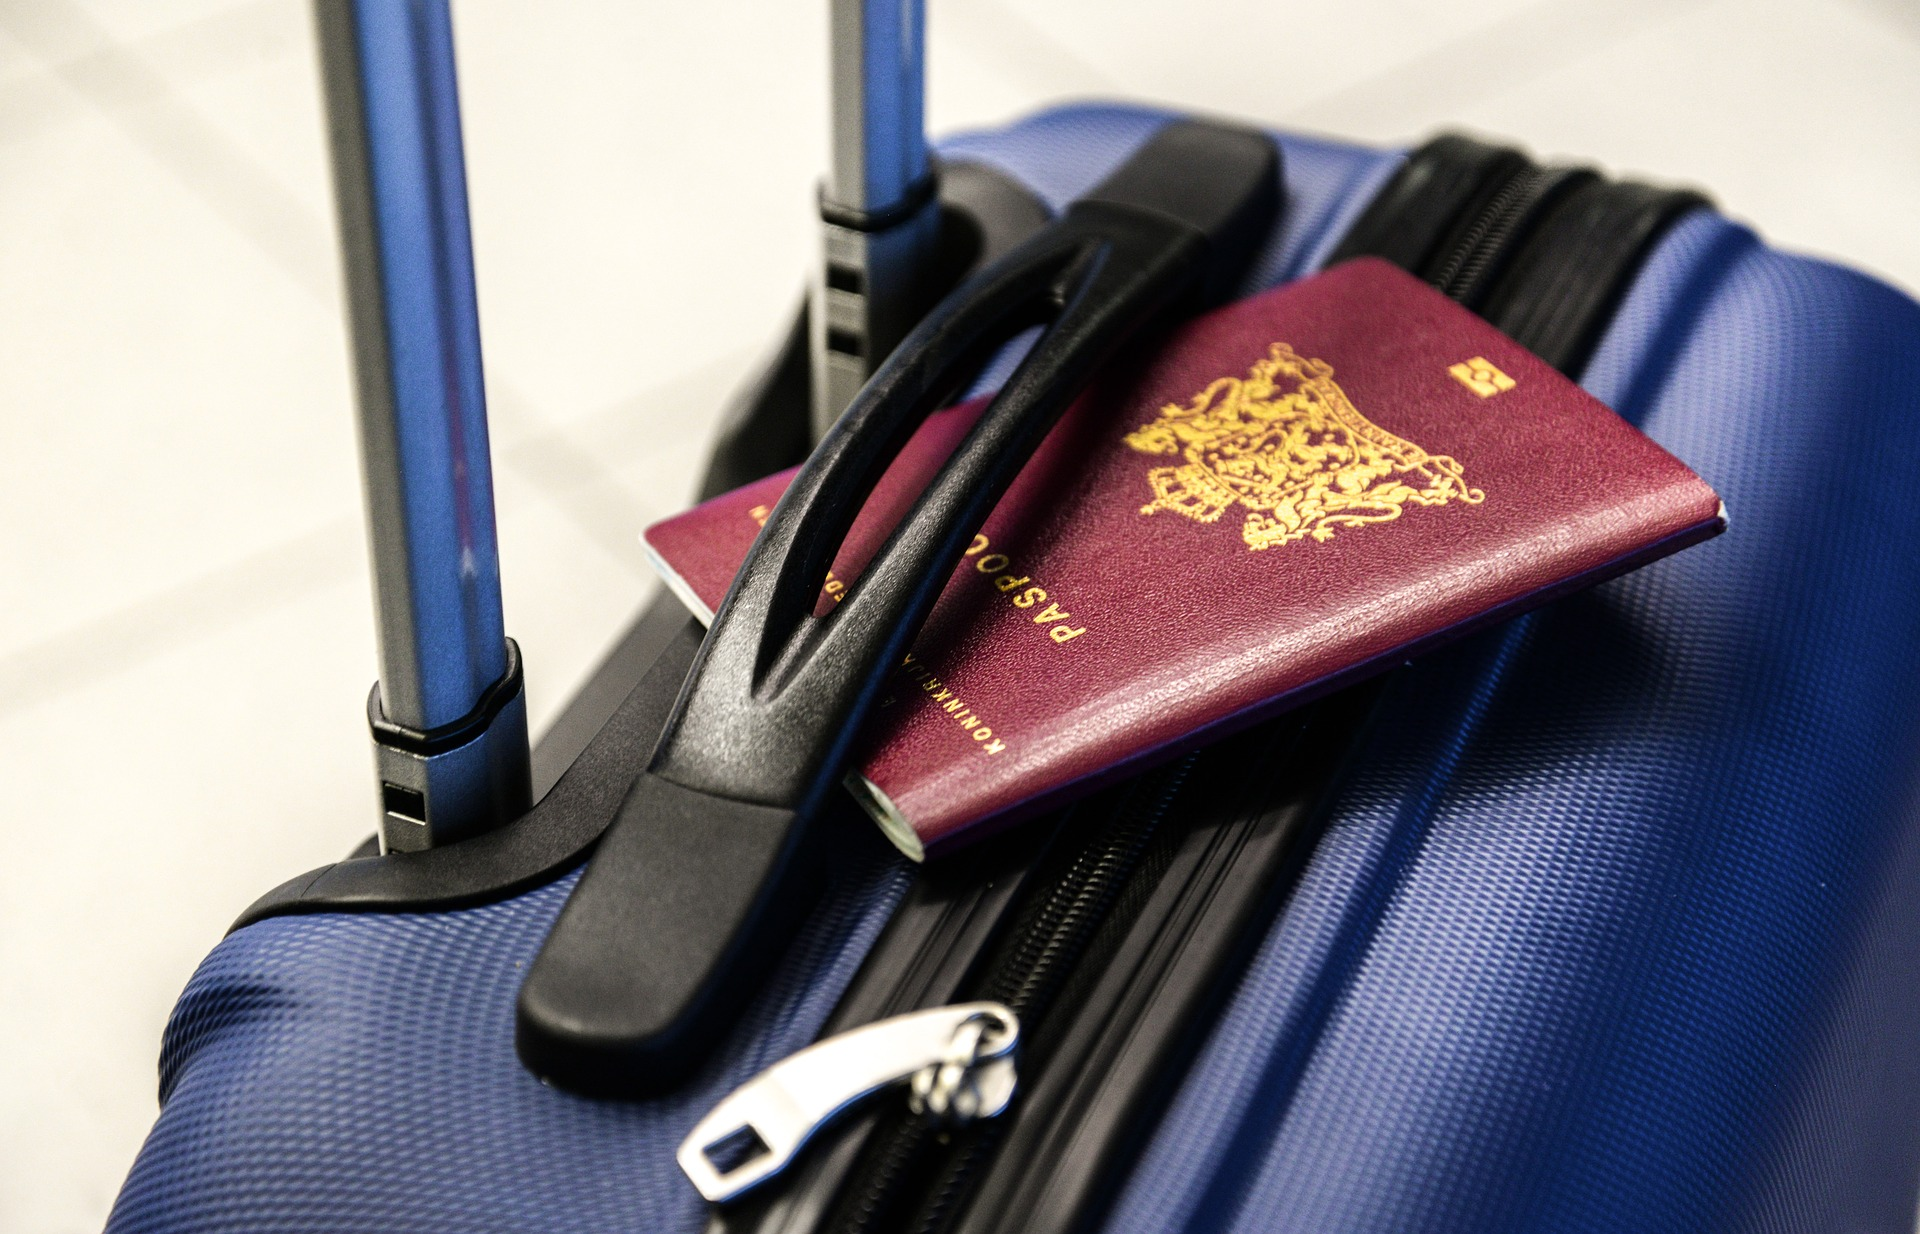 3. Forgetting to carry your passport